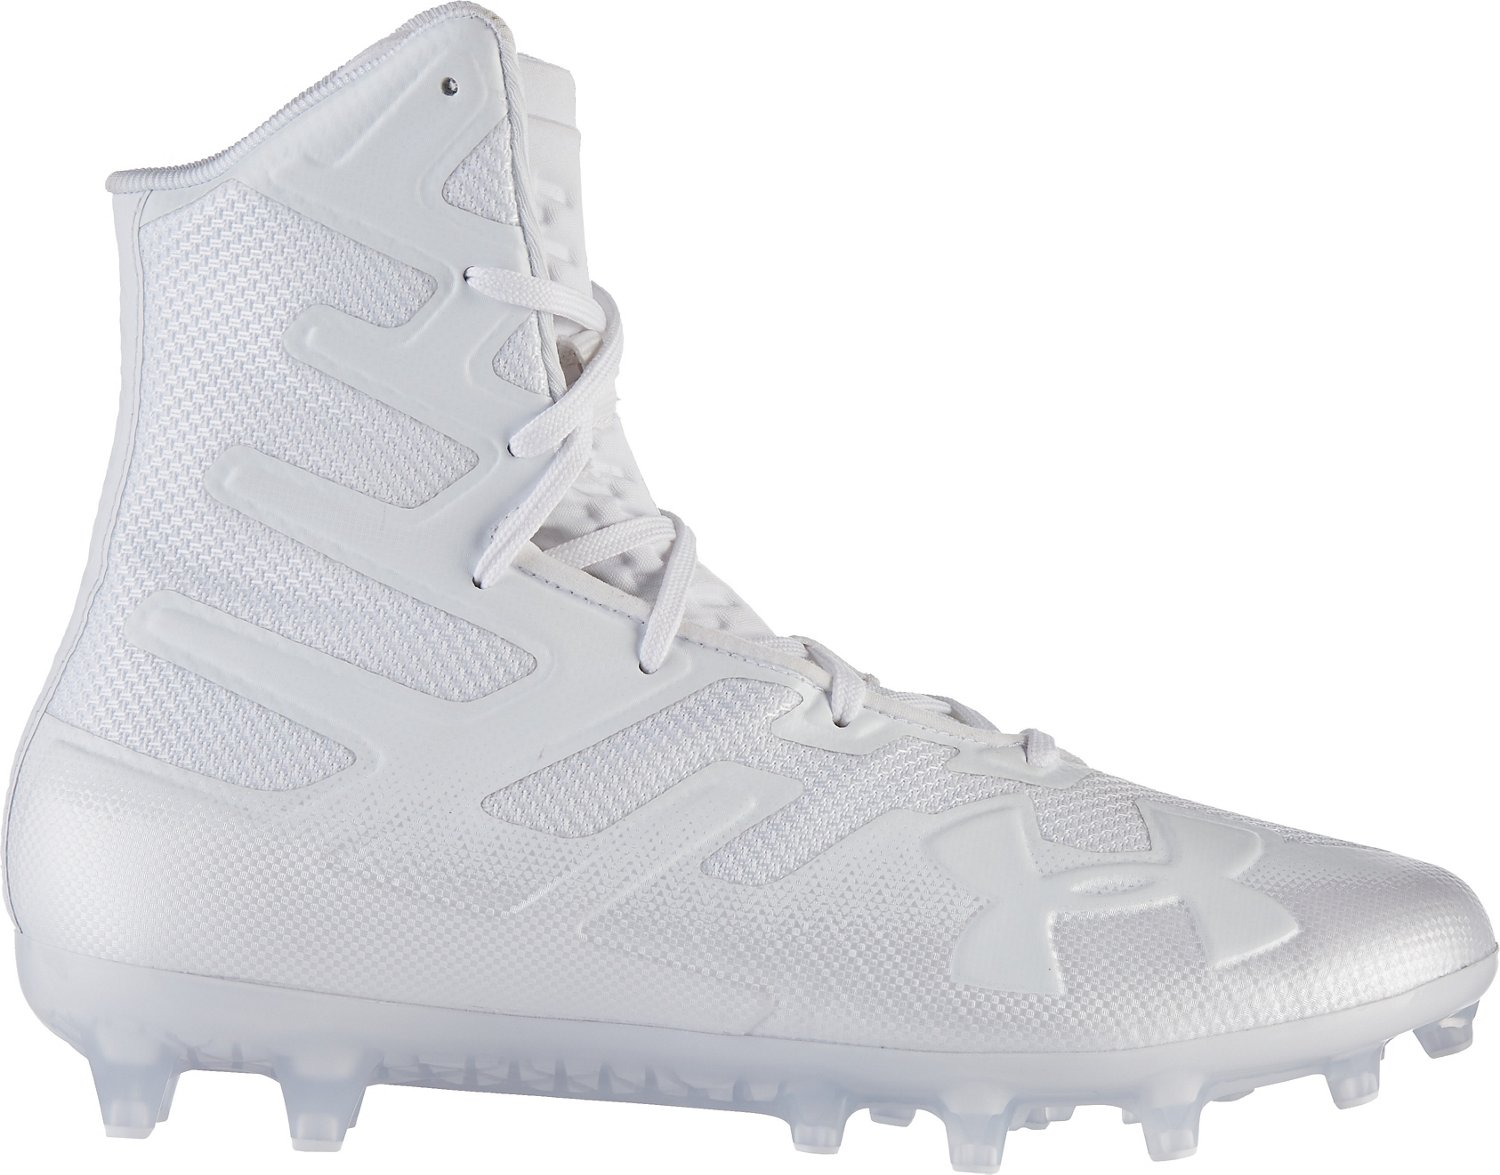 638e6e449 Display product reviews for Under Armour Men's Highlight MC Football Cleats